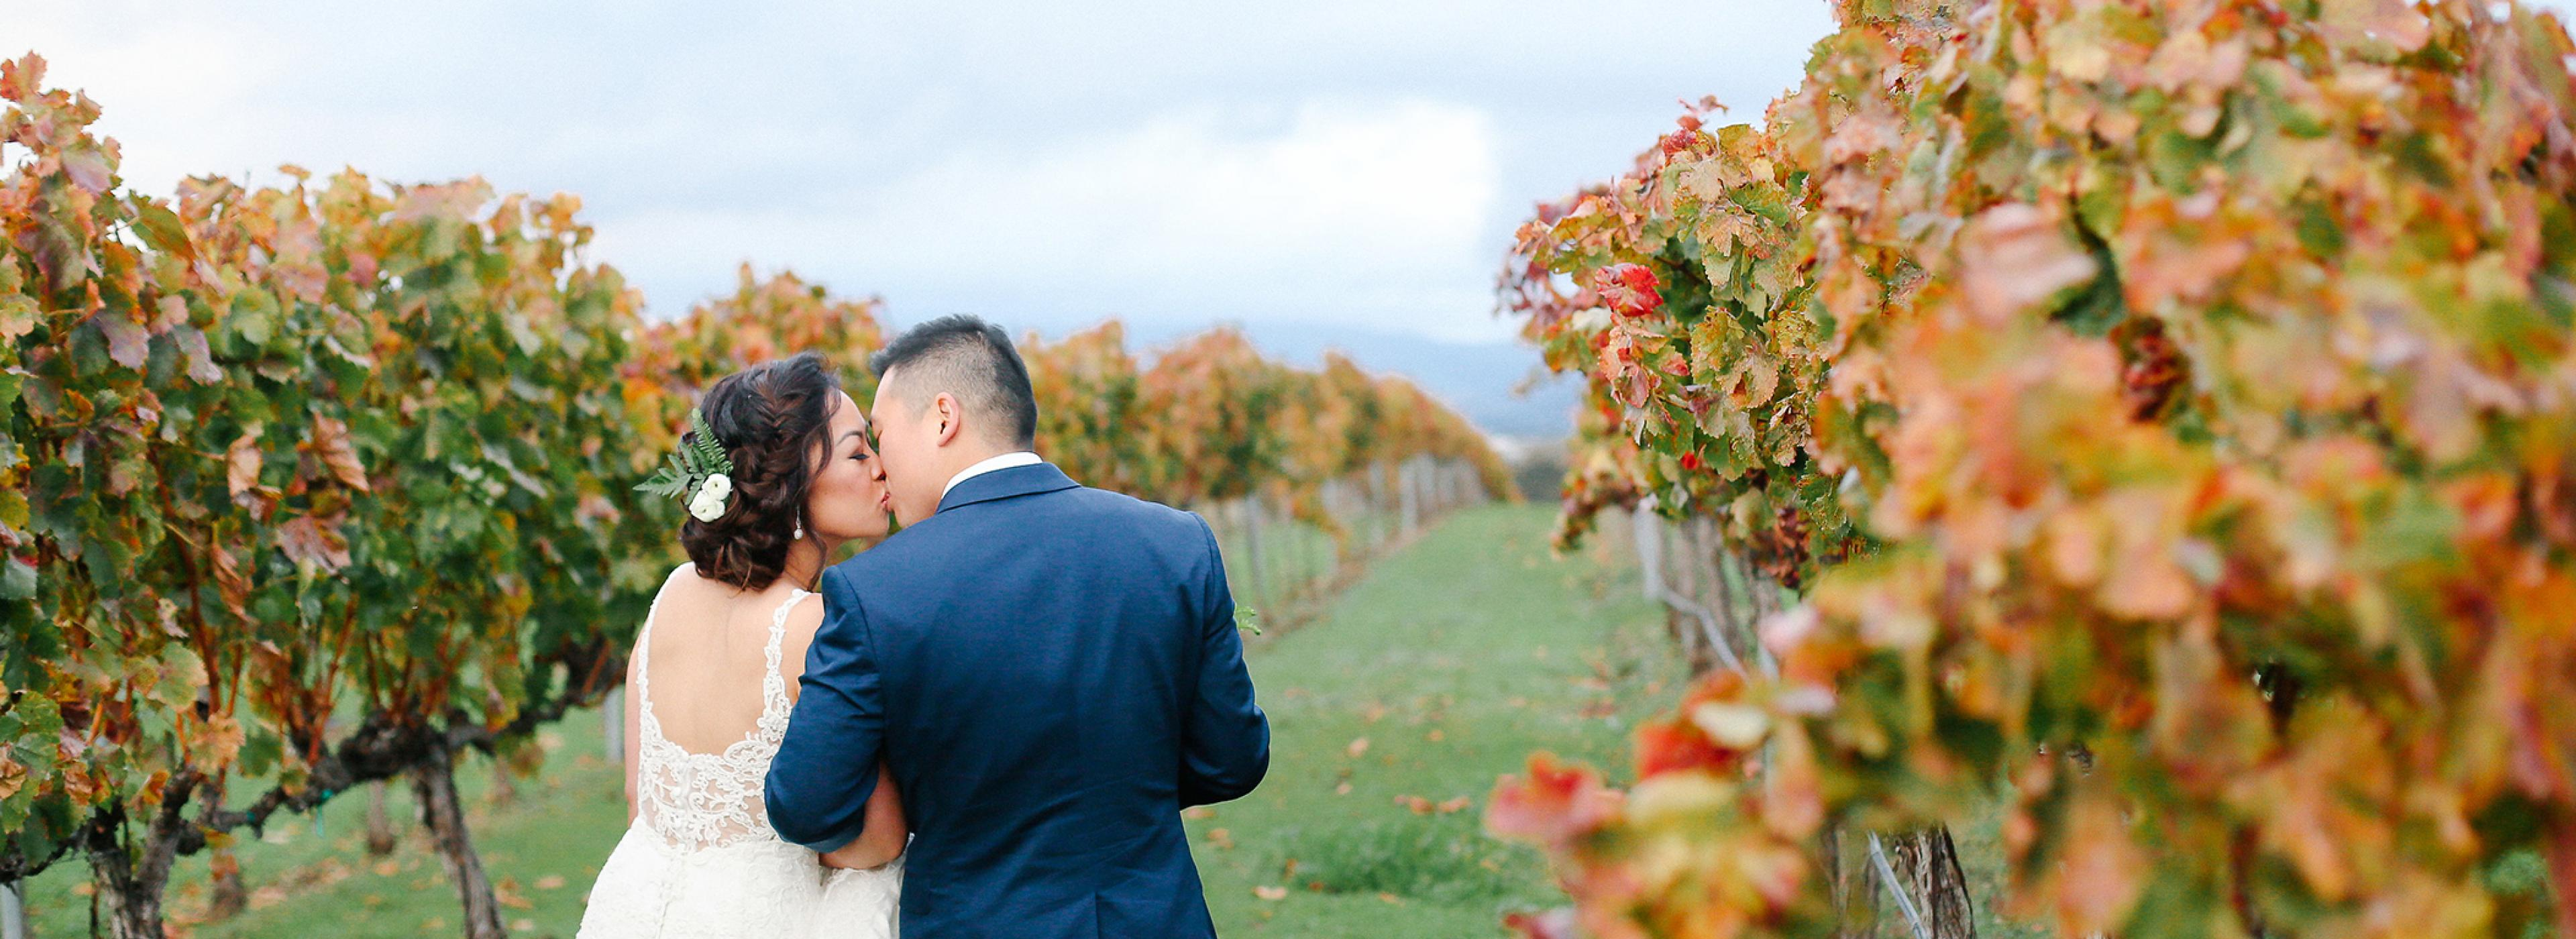 Bride and groom kissing in vineyard